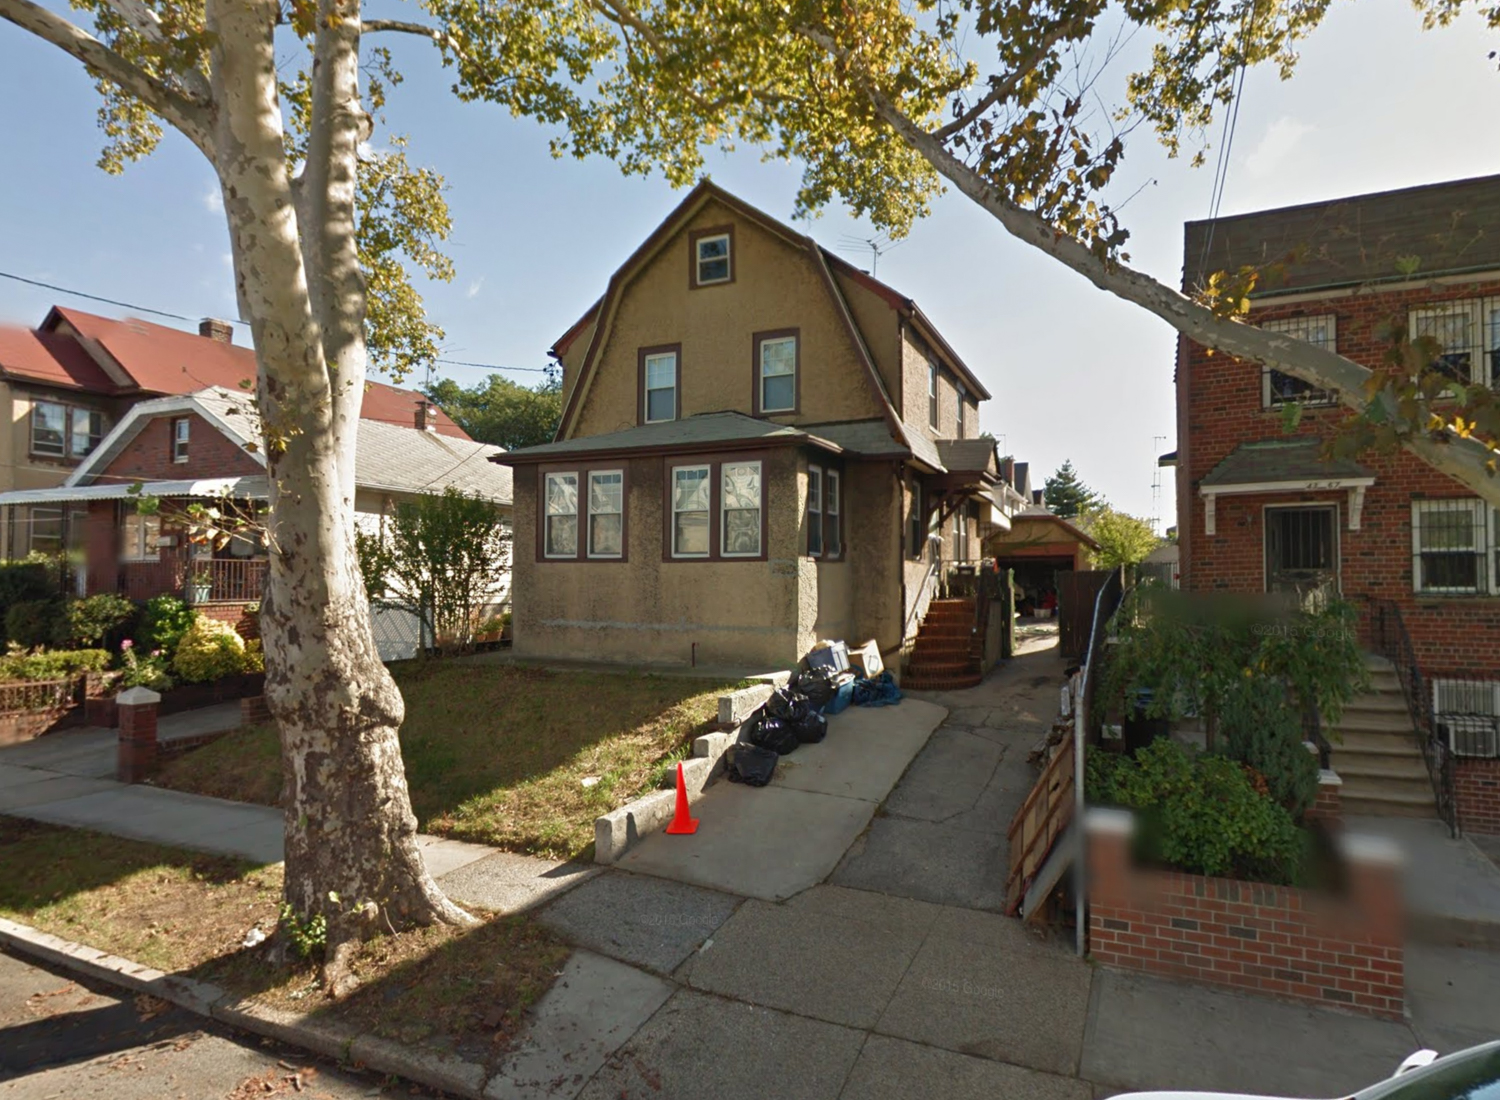 43-65 157th Street, via Google Maps